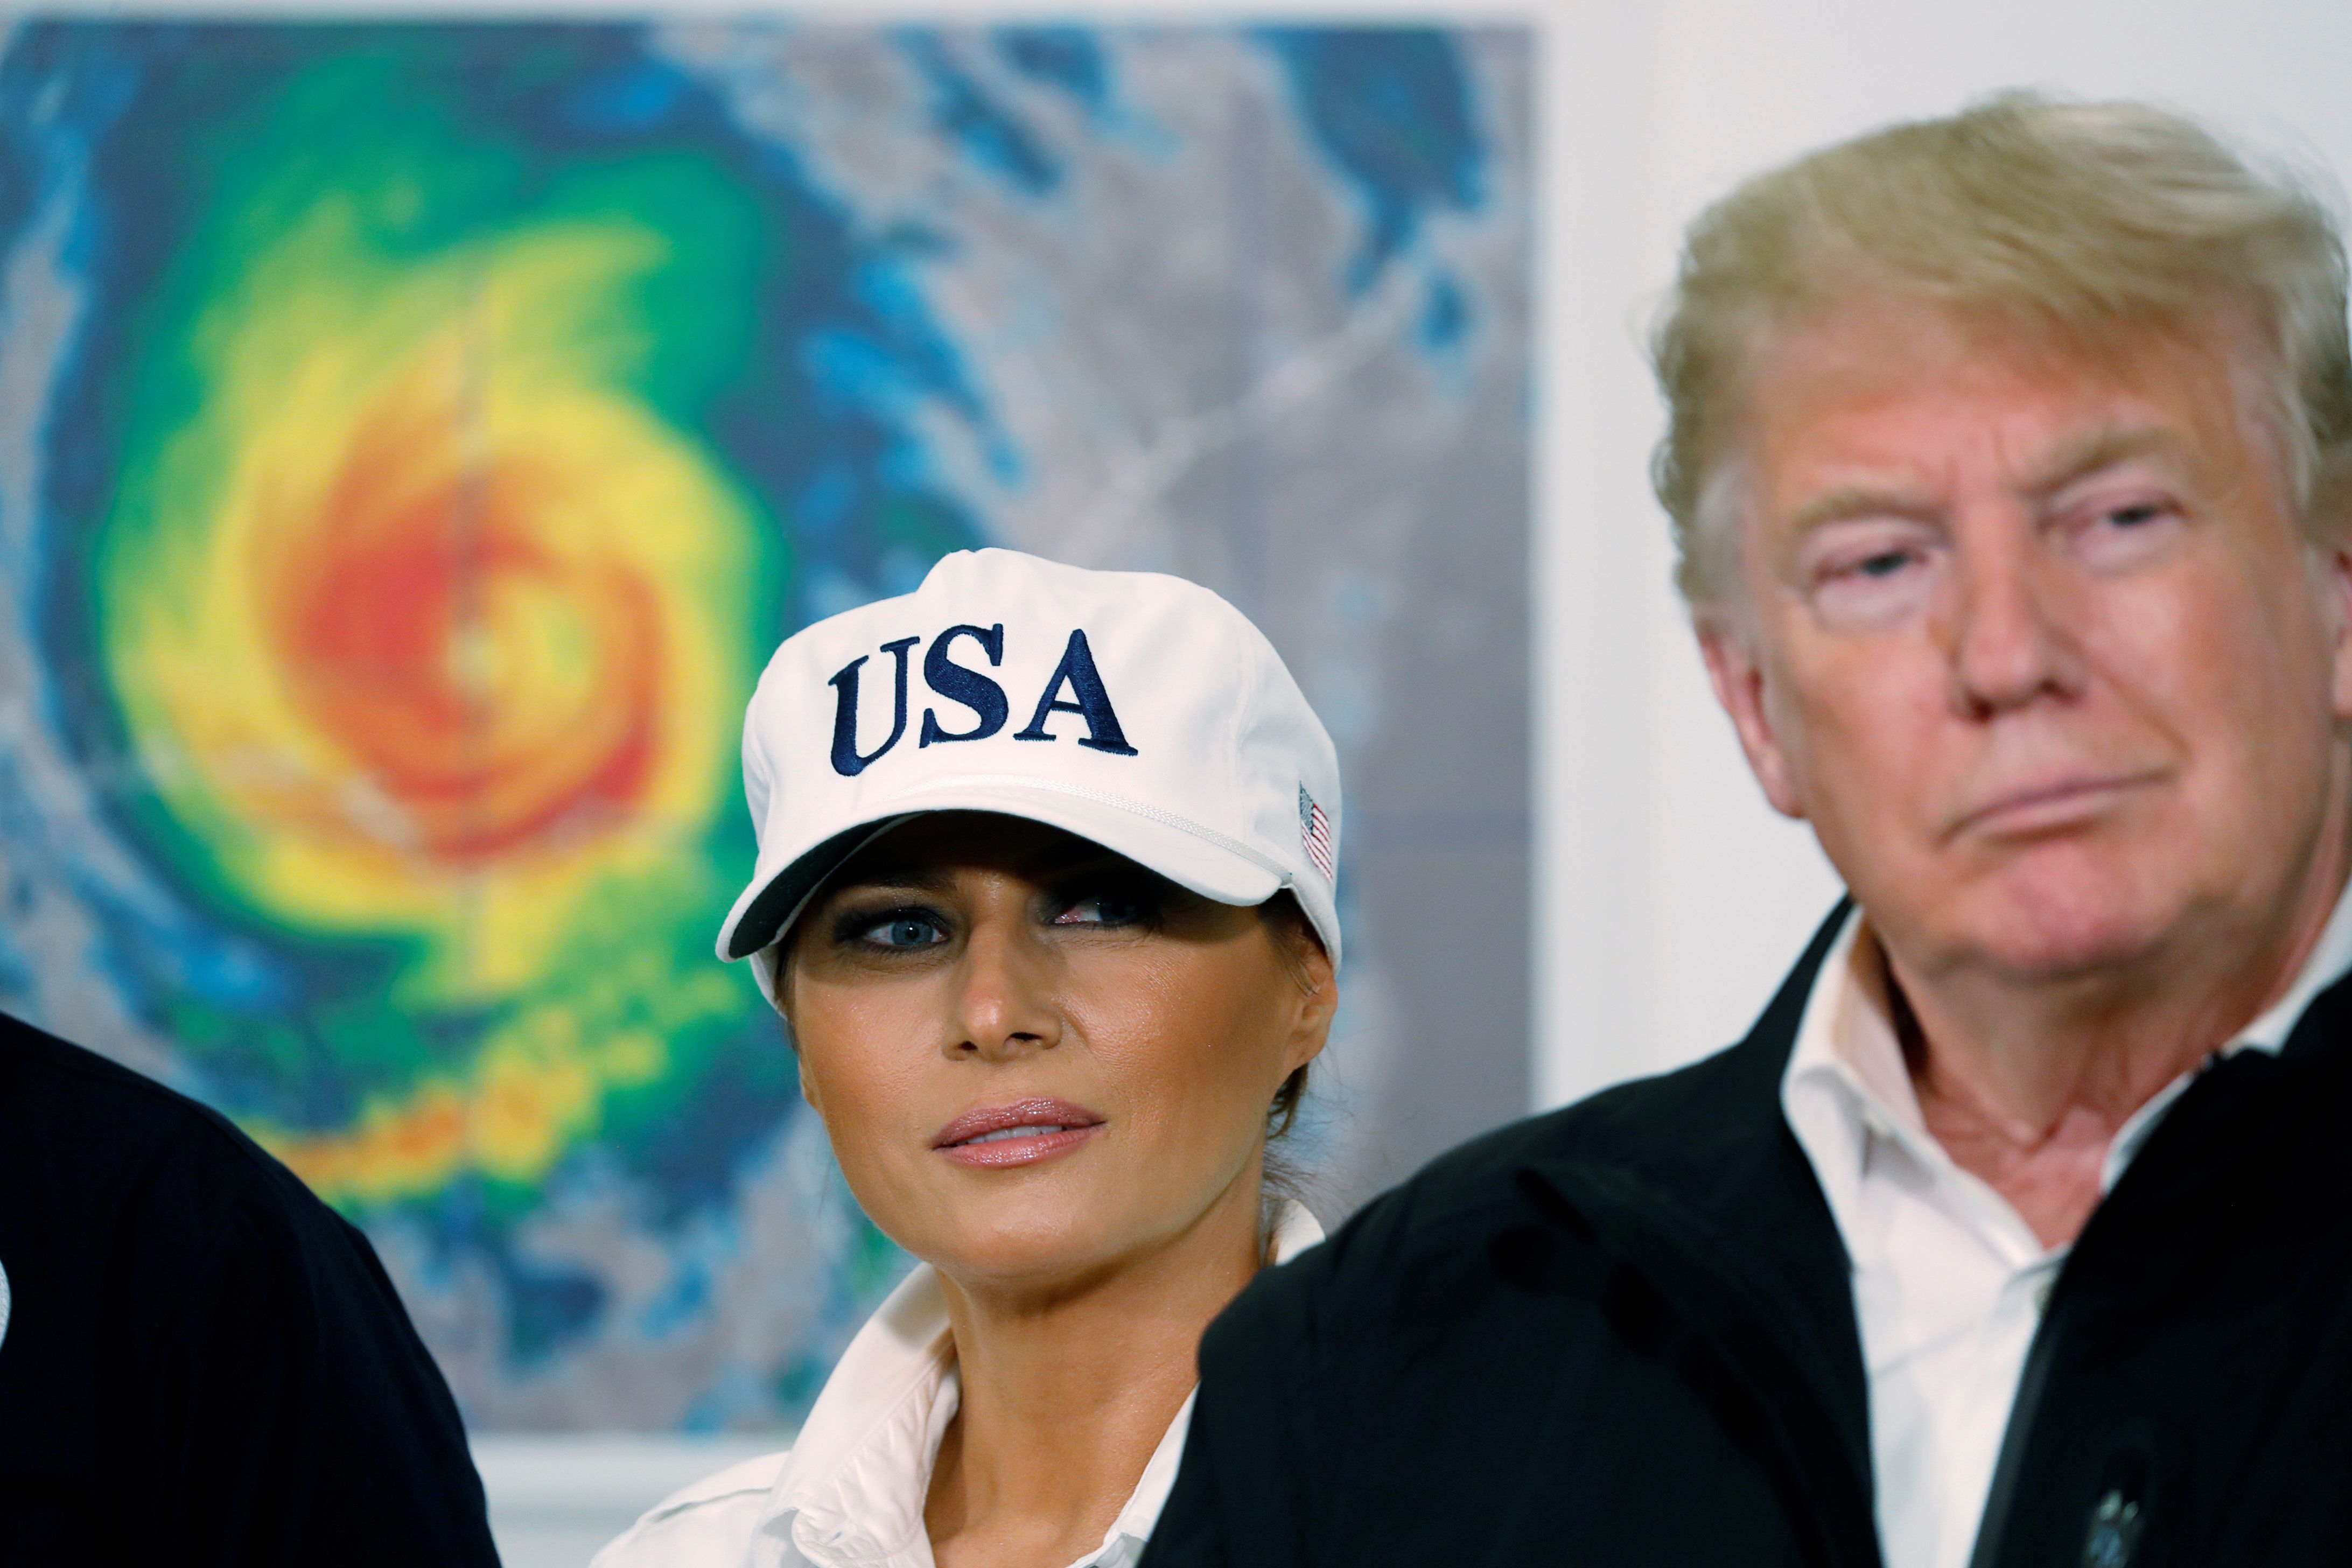 U.S. first lady Melania Trump and President Donald Trump listen as they participate in a briefing about the damage caused by Hurricane Michael in Macon, Georgia, U.S., October 15, 2018. REUTERS/Kevin Lamarque